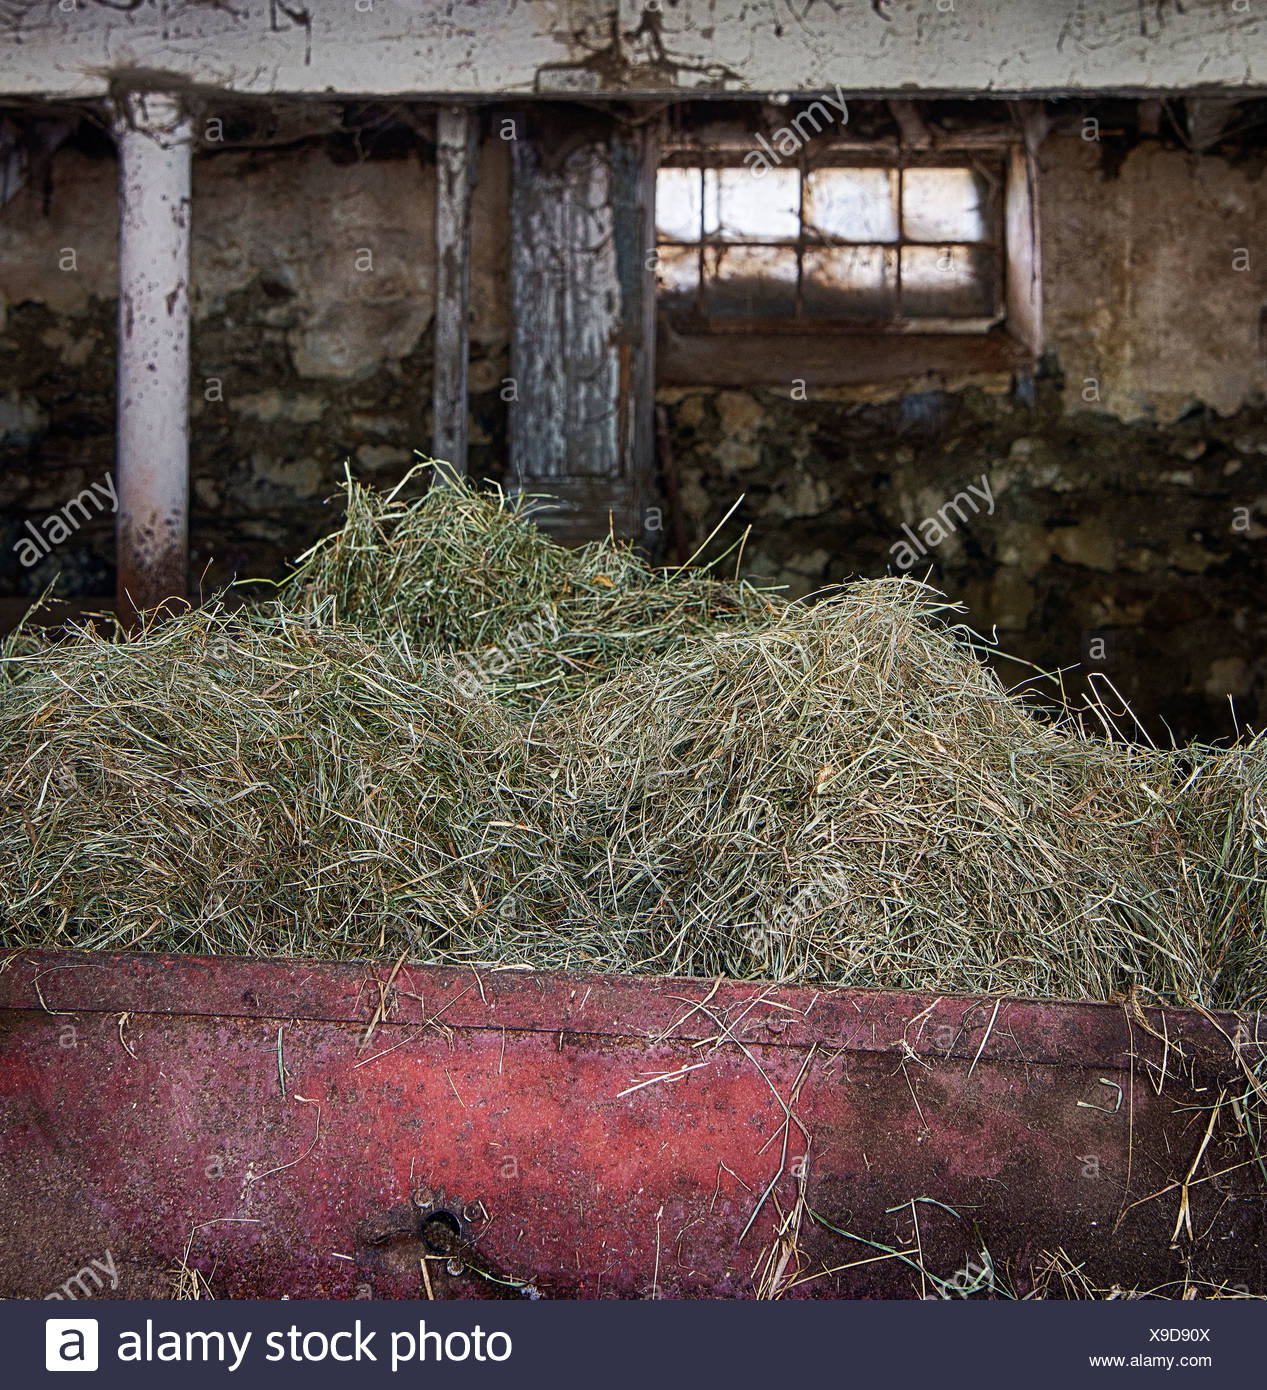 Hay in a barn bin to feed livestock - Stock Image